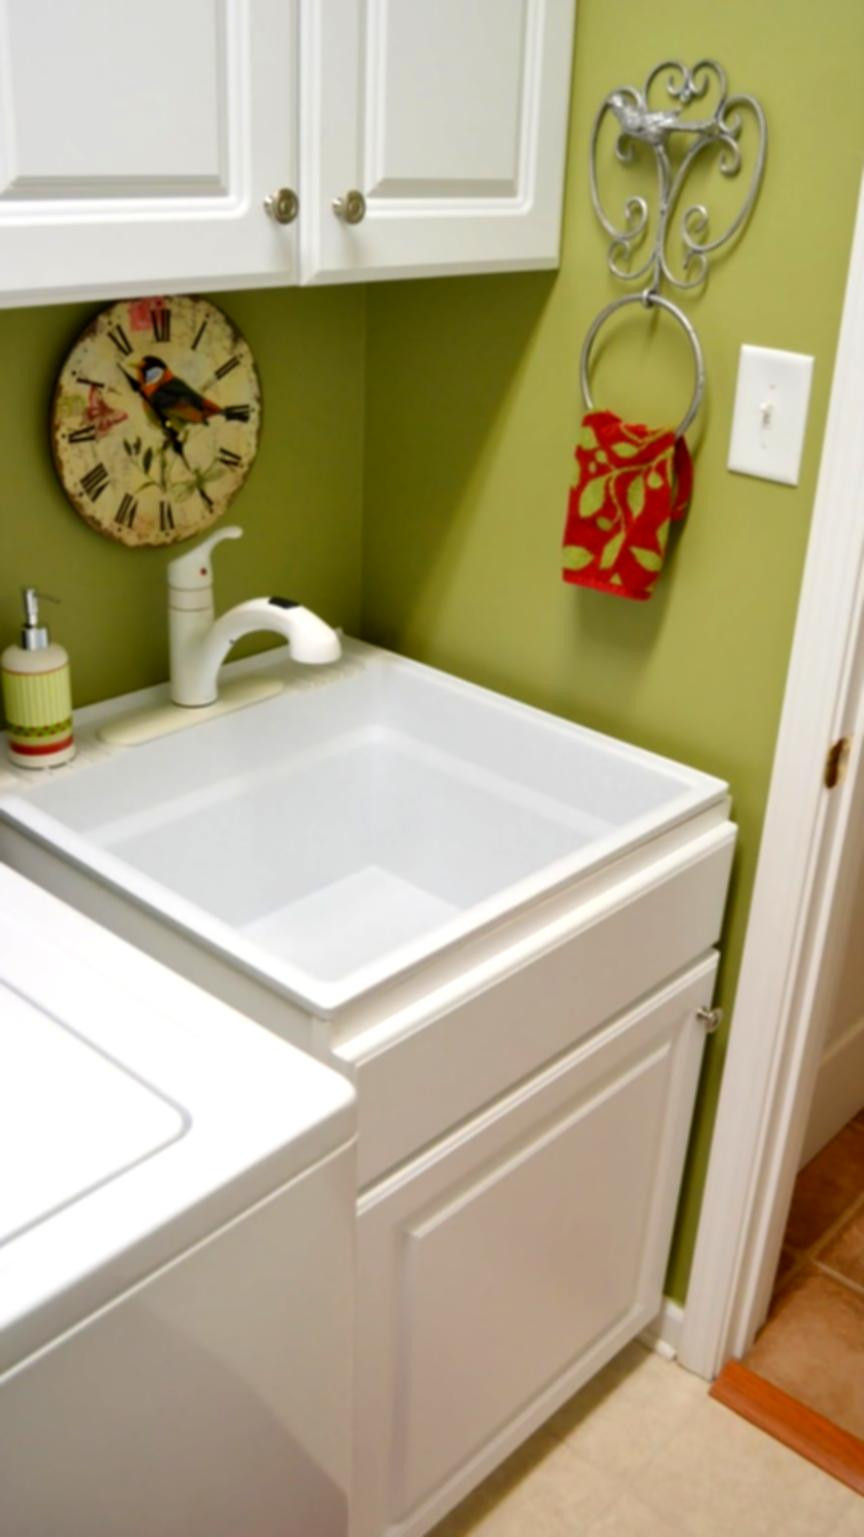 Best ideas about Laundry Room Utility Sink . Save or Pin Best Stainless Steel Utility Sink Ideas Laundry Room Lowes Now.